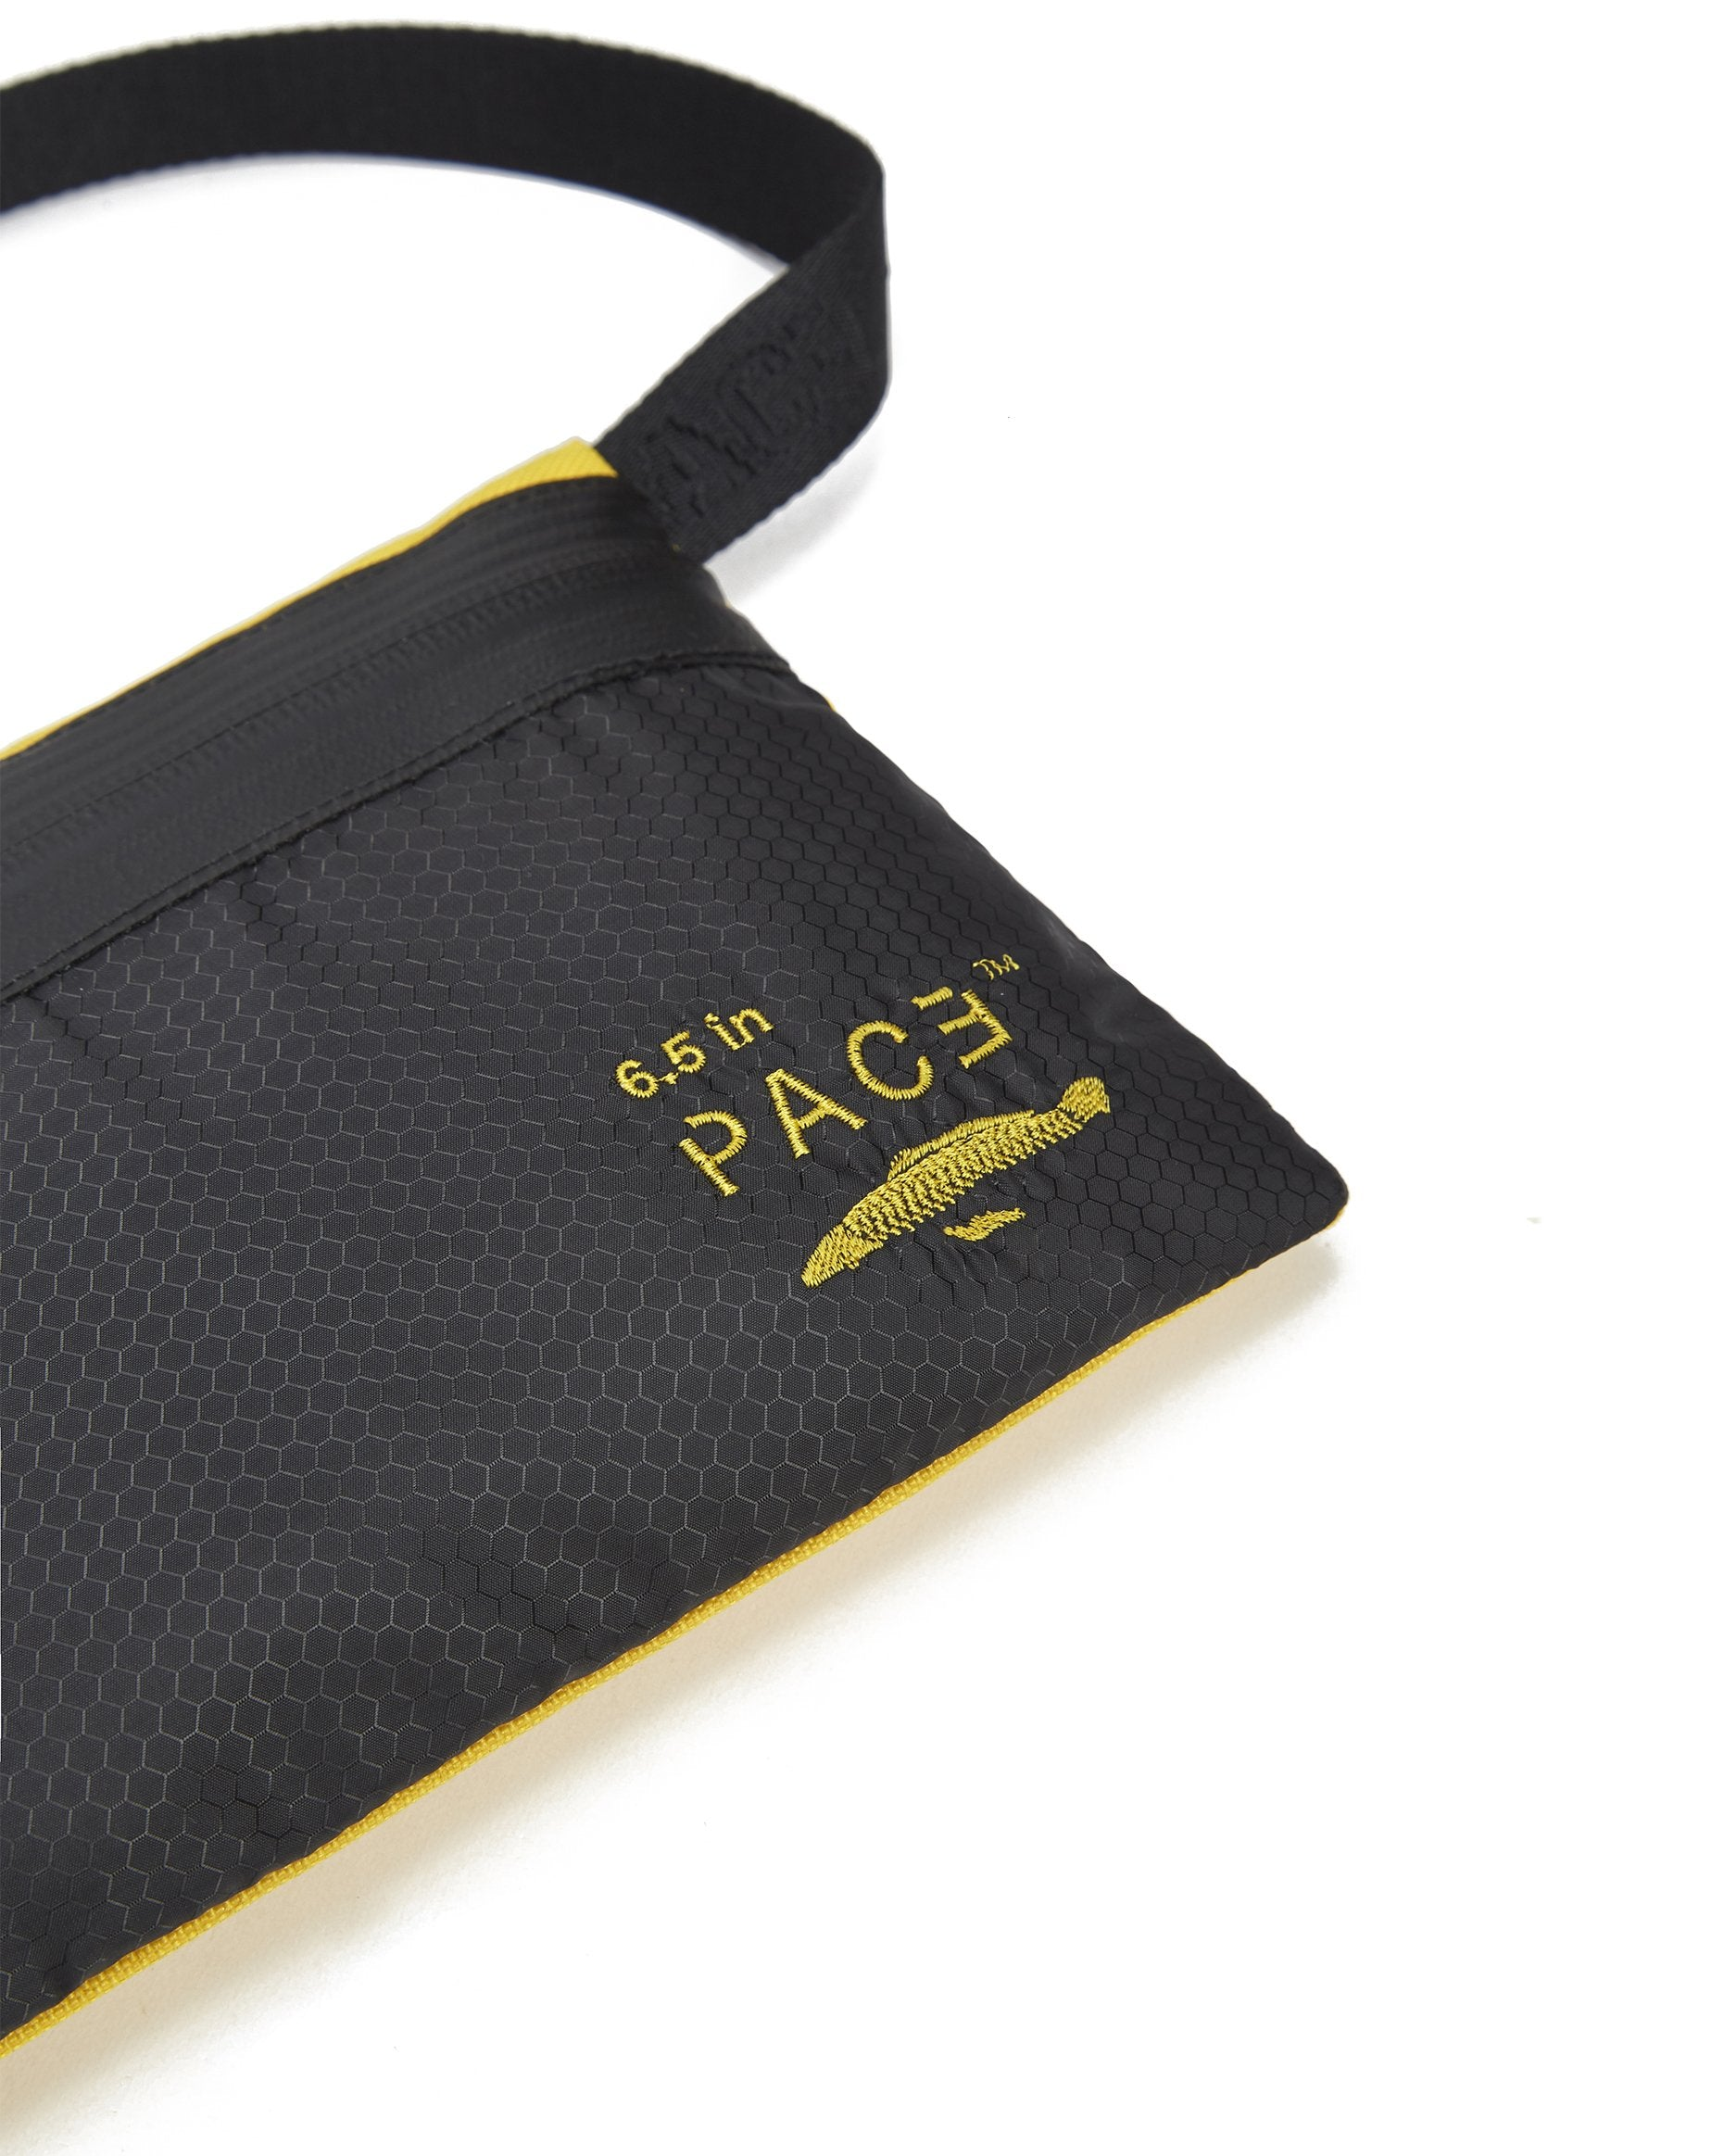 POCKET BAG HEXAGONO CORDURA®